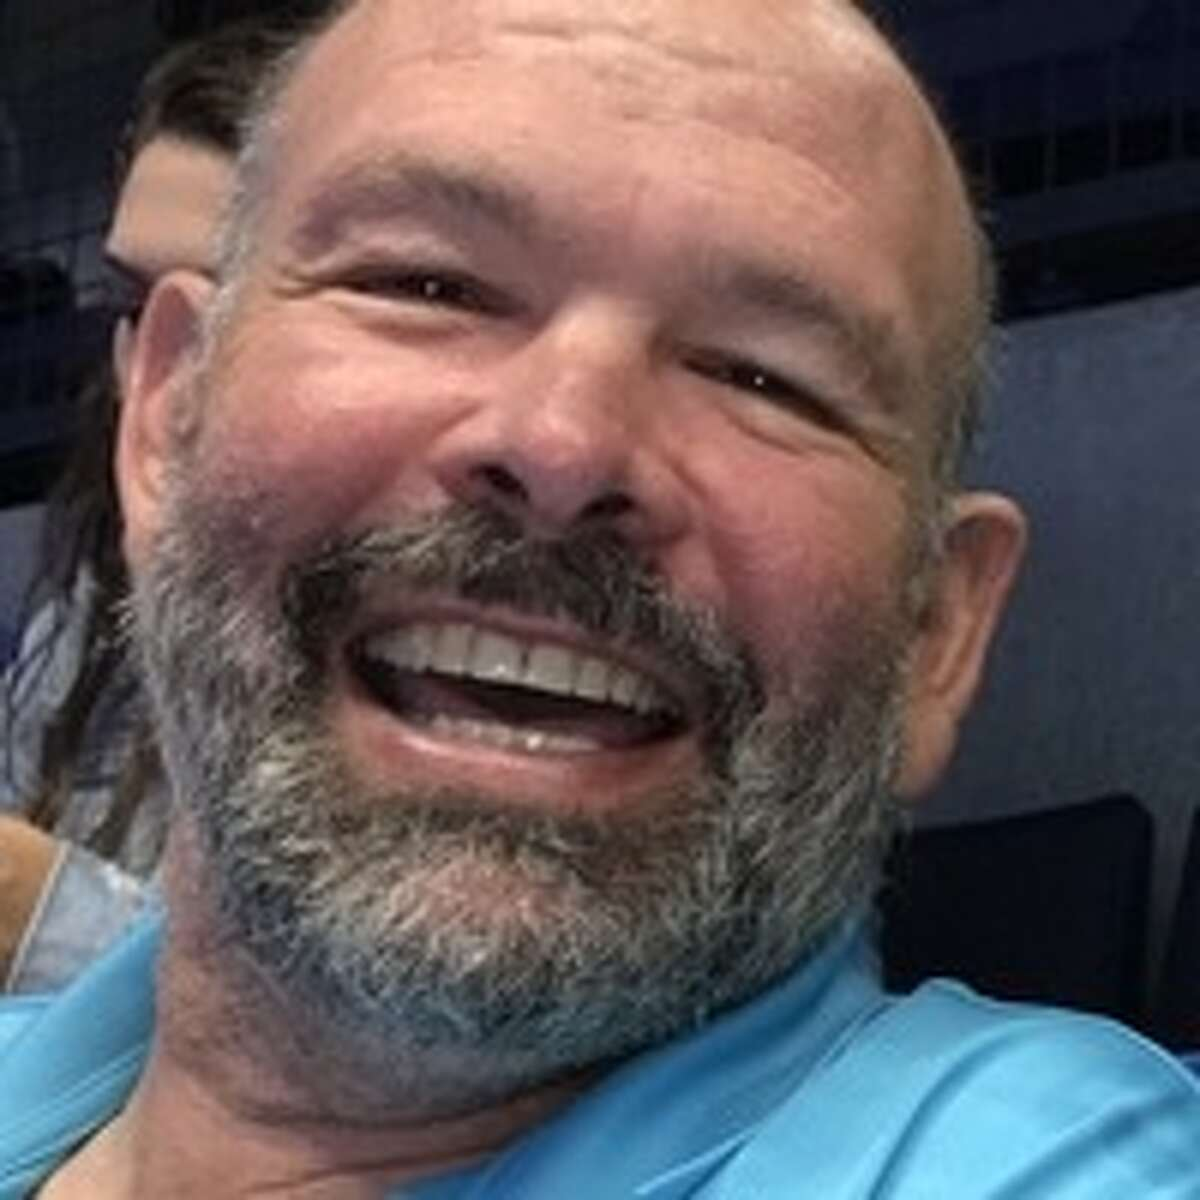 Mark French died on Sunday after being punched from behind and hitting the pavement in front of Clancy's Tavern on Saturday night in Saratoga Springs.